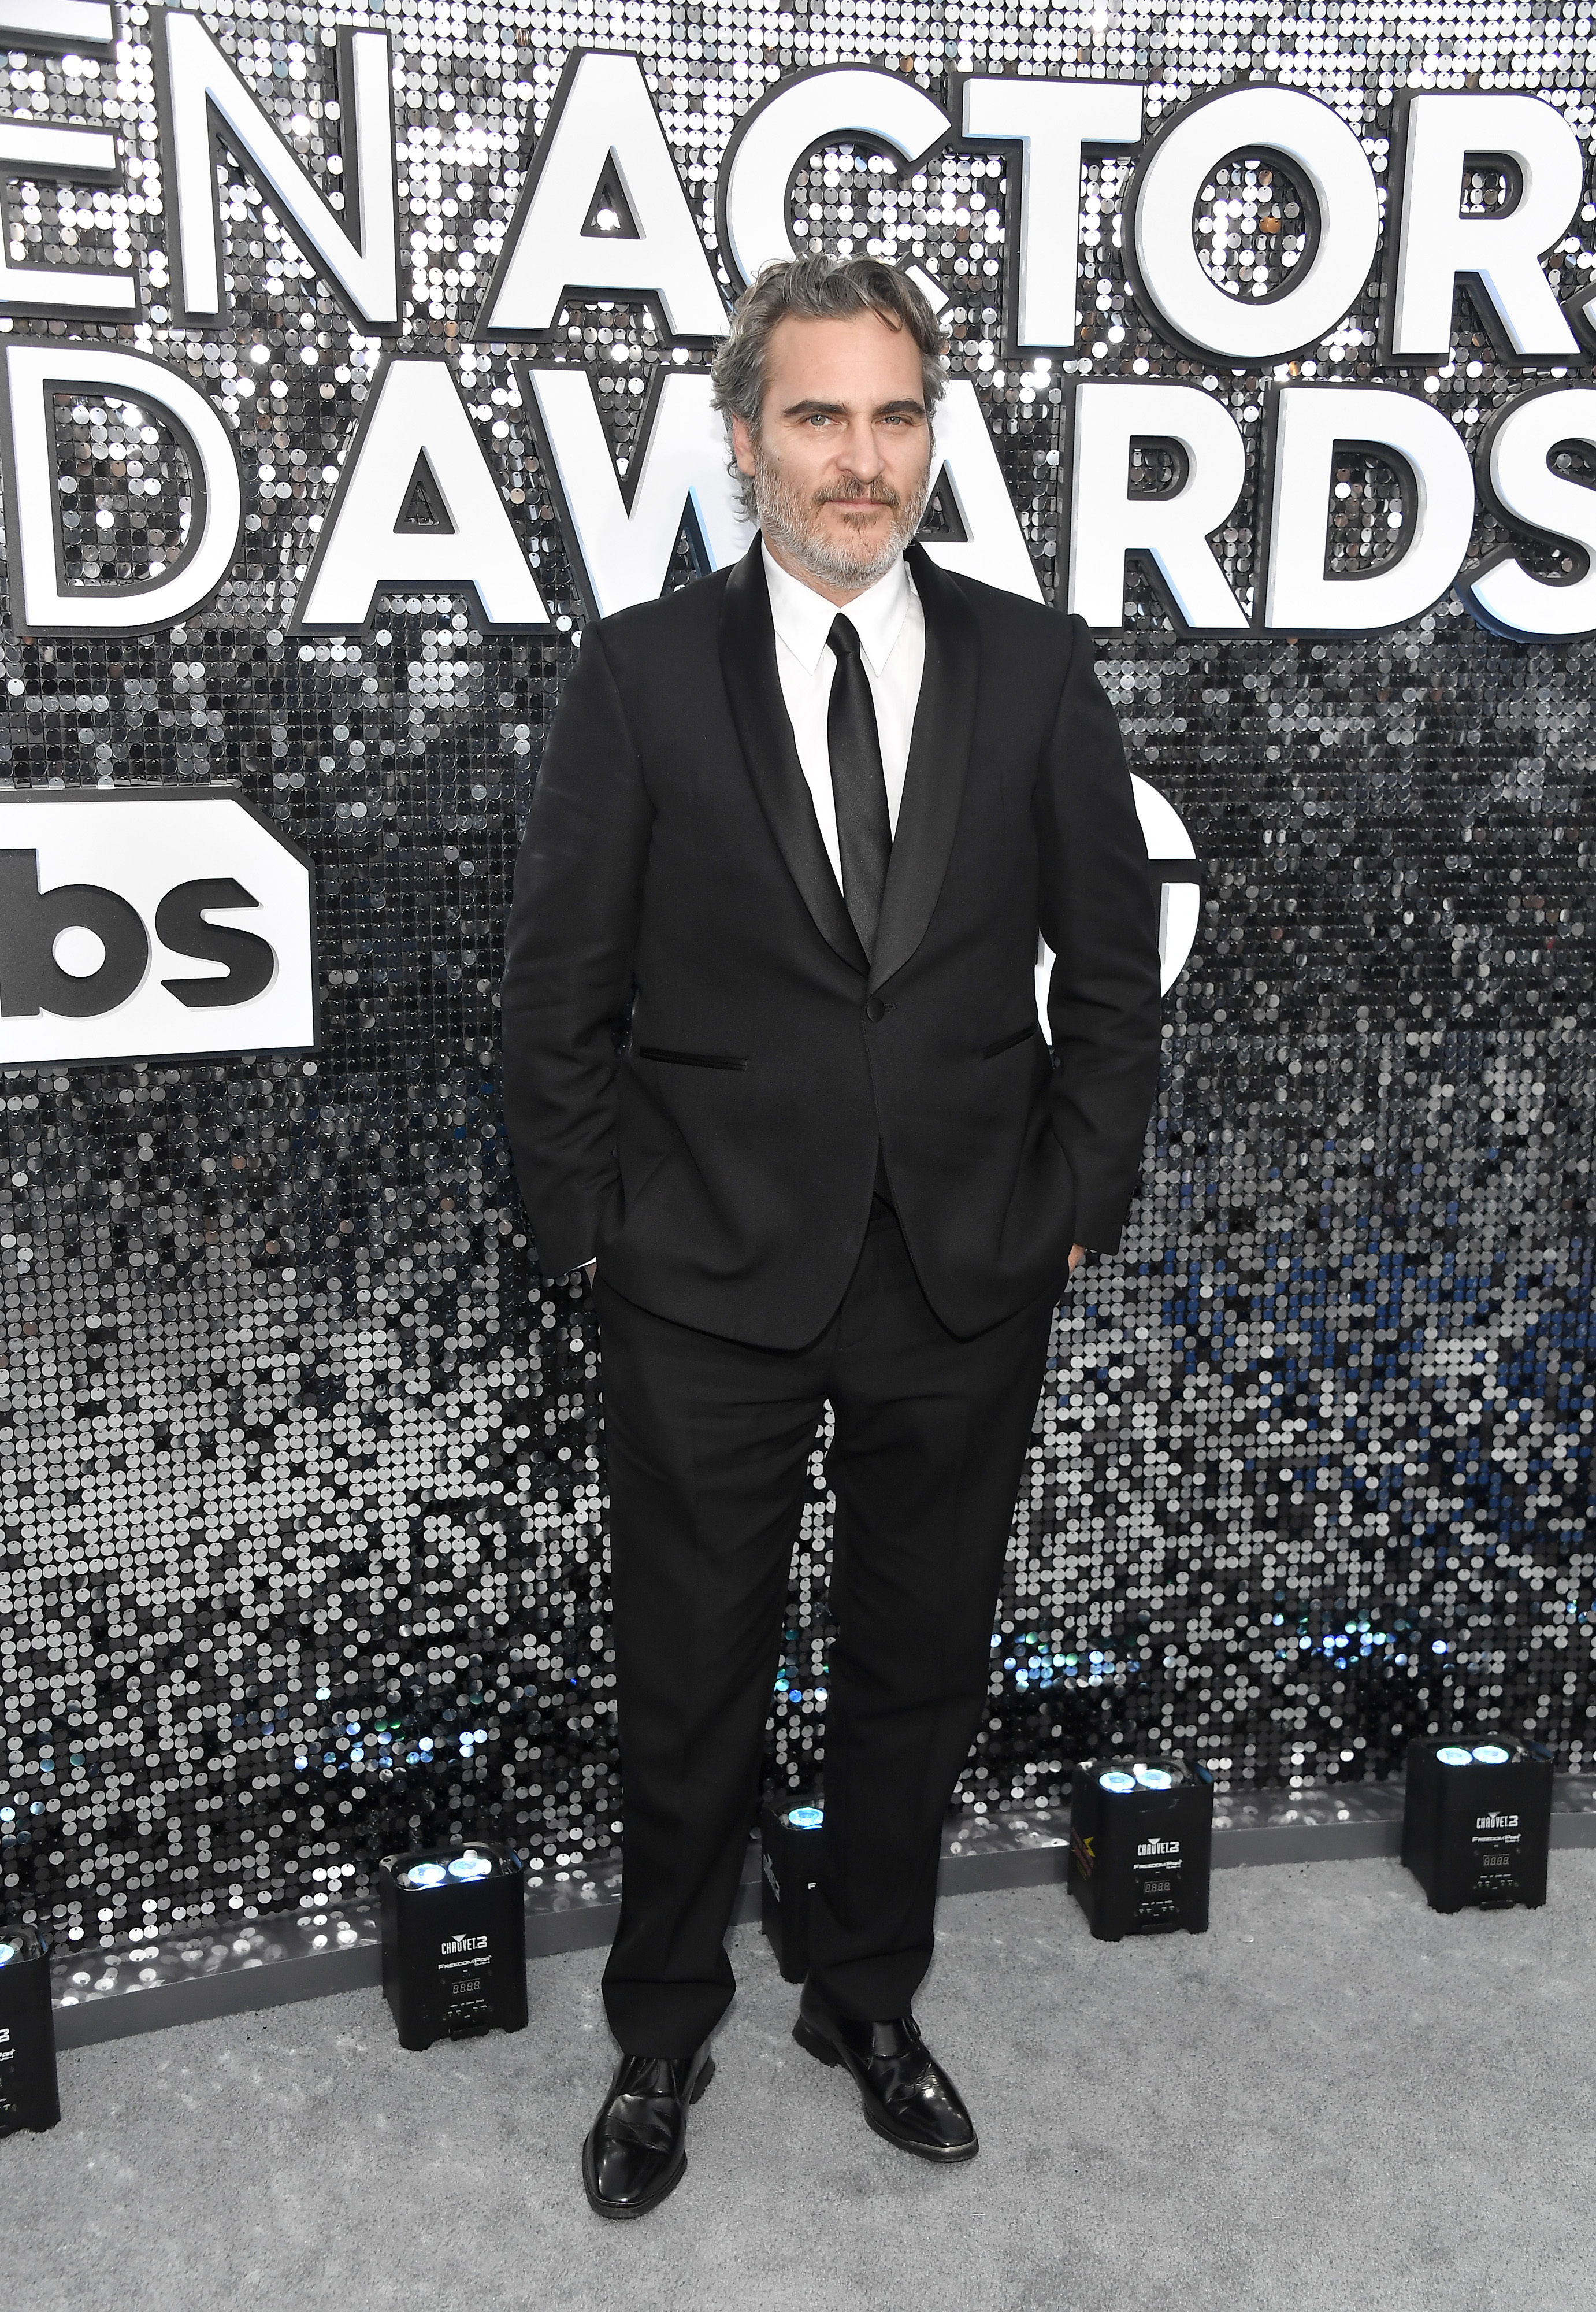 LOS ANGELES, CALIFORNIA - JANUARY 19: Joaquin Phoenix attends the 26th Annual Screen ActorsGuild Awards at The Shrine Auditorium on January 19, 2020 in Los Angeles, California. (Photo by Frazer Harrison/Getty Images)